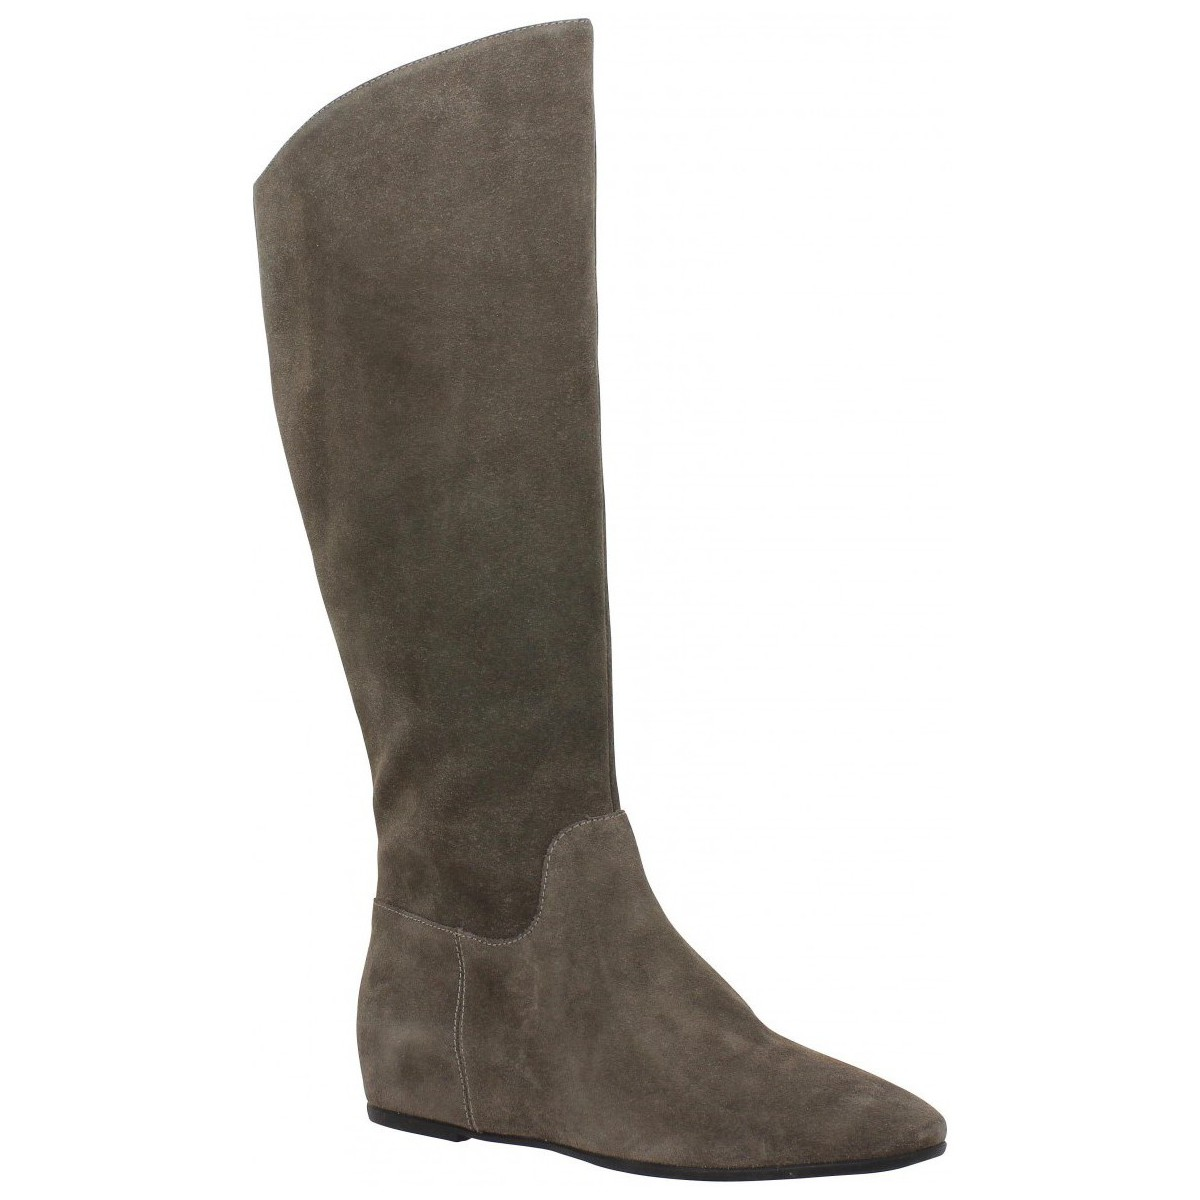 Botte ville What For 95 Femme Taupe Taupe